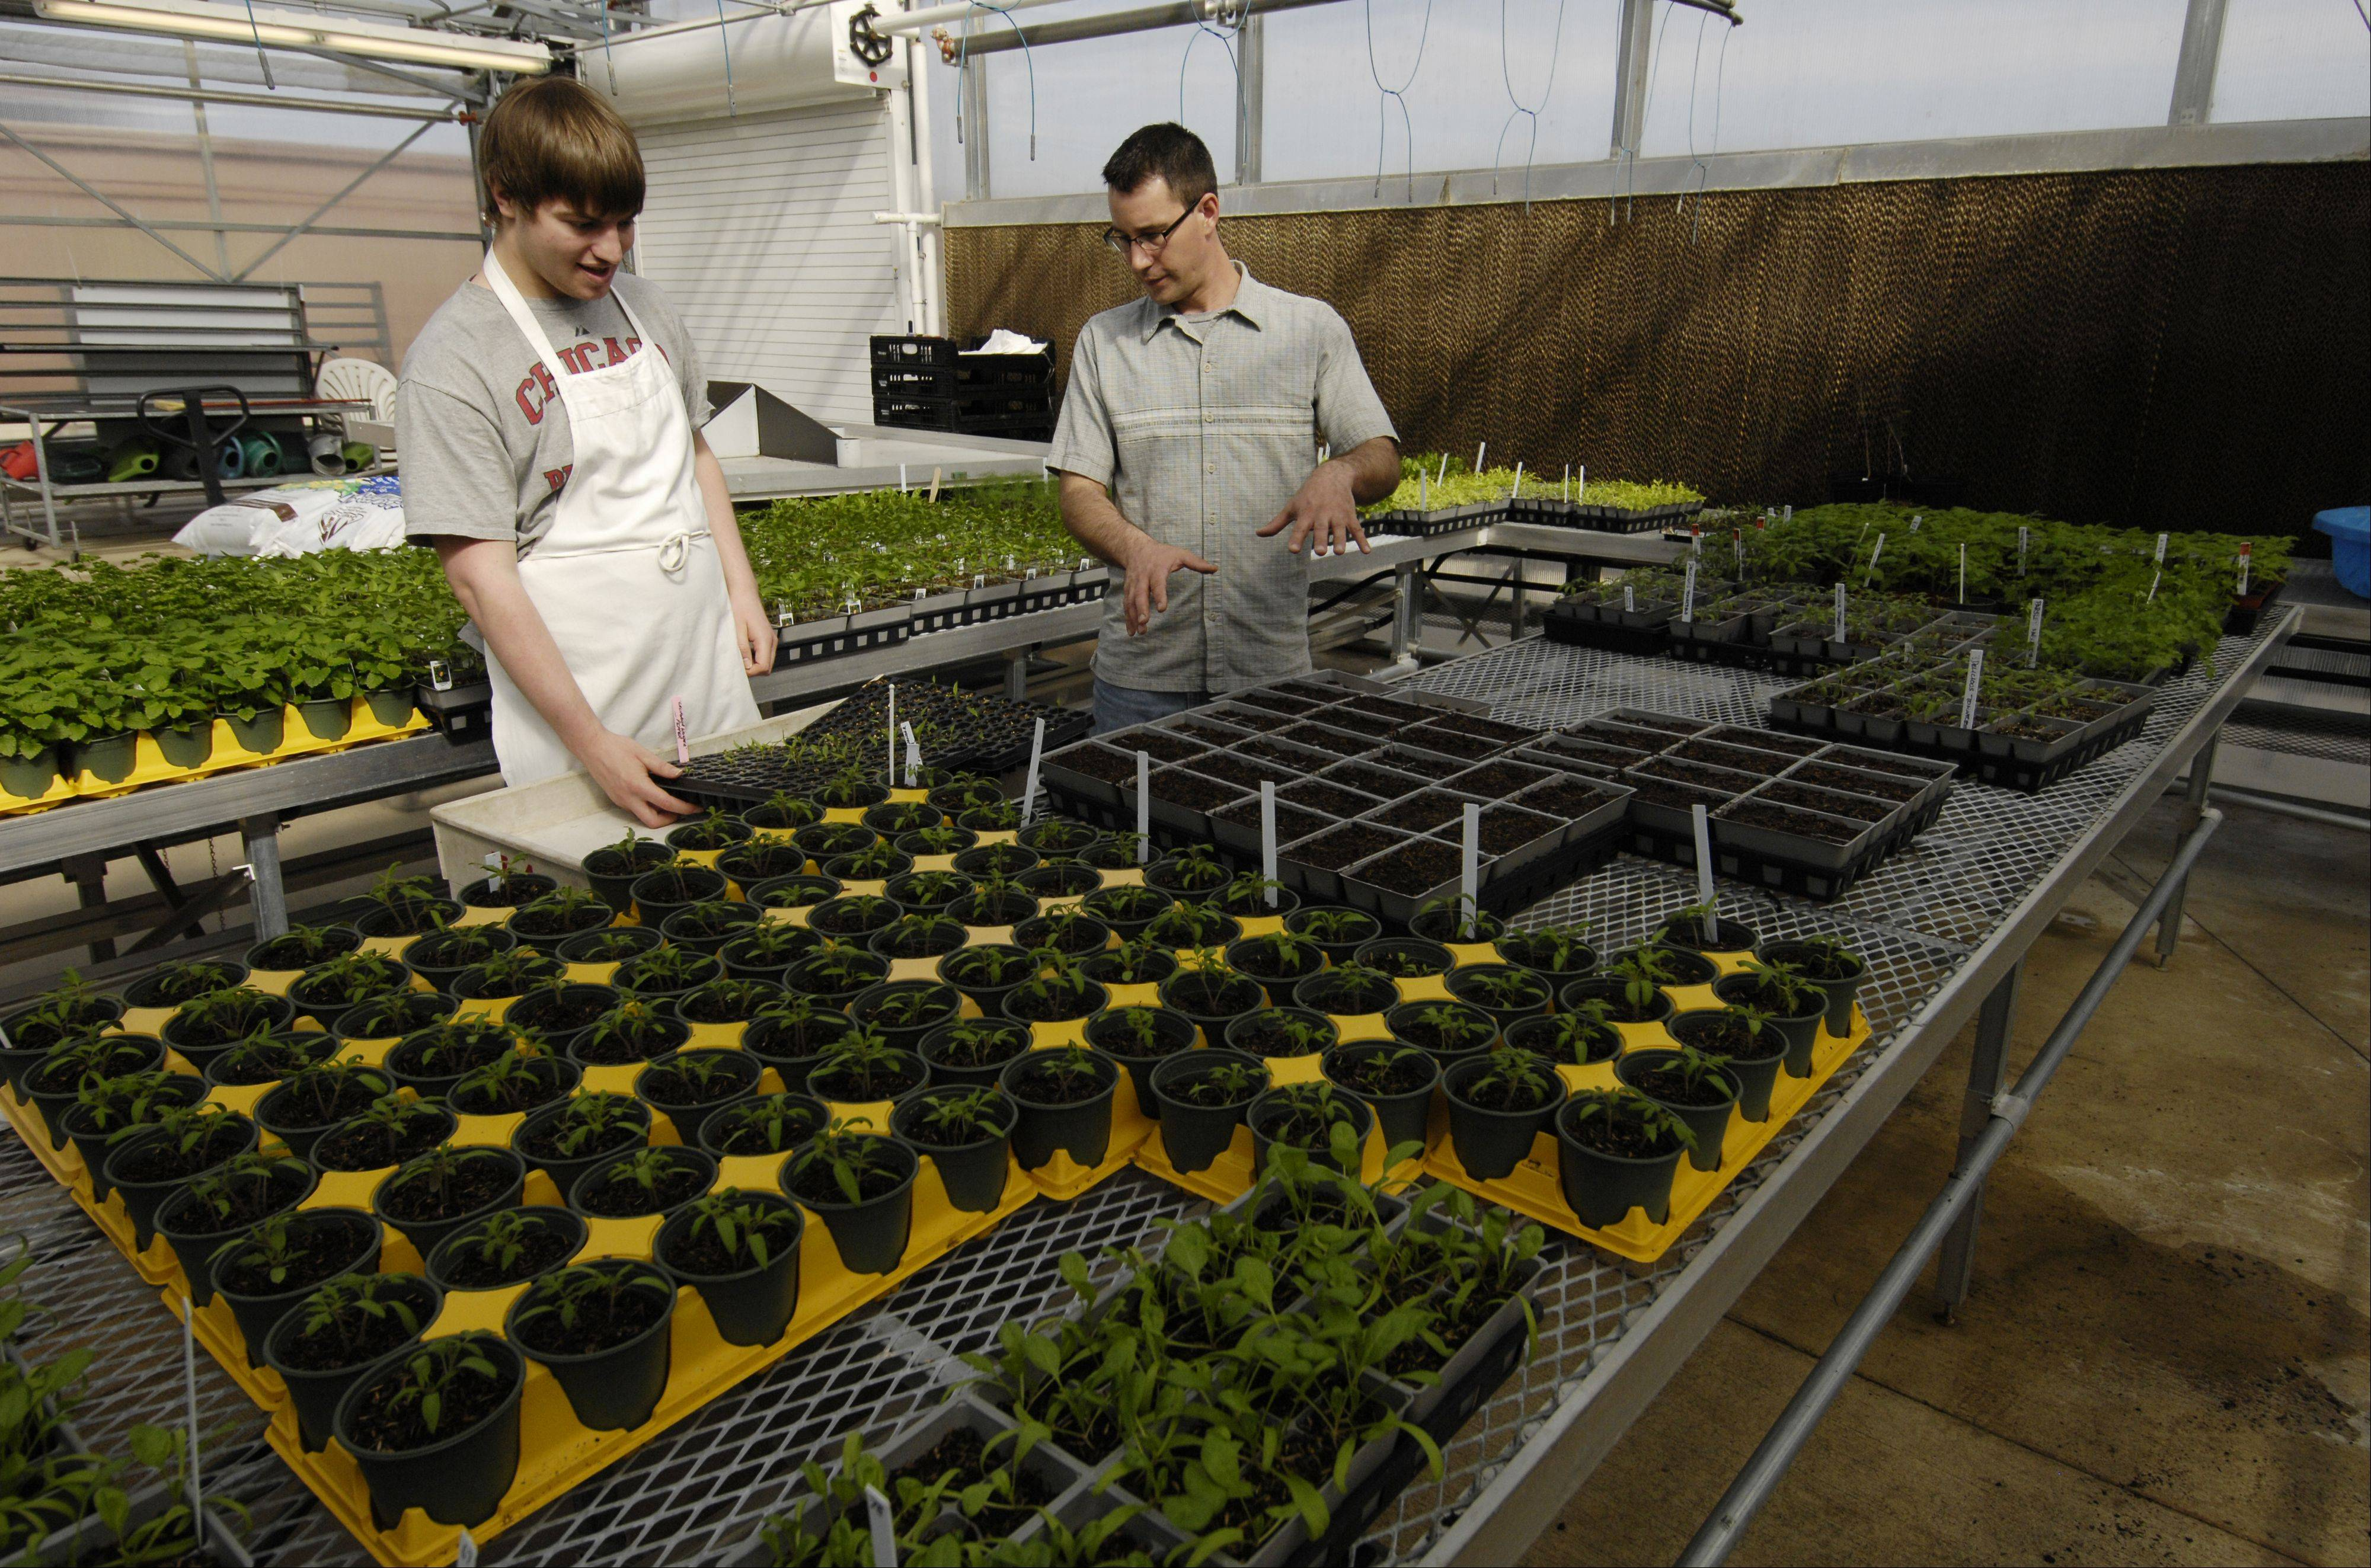 Student volunteer William Pourch works with Lab Assistant Marty Bartz in the College of DuPage greenhouse, transplanting hot peppers.